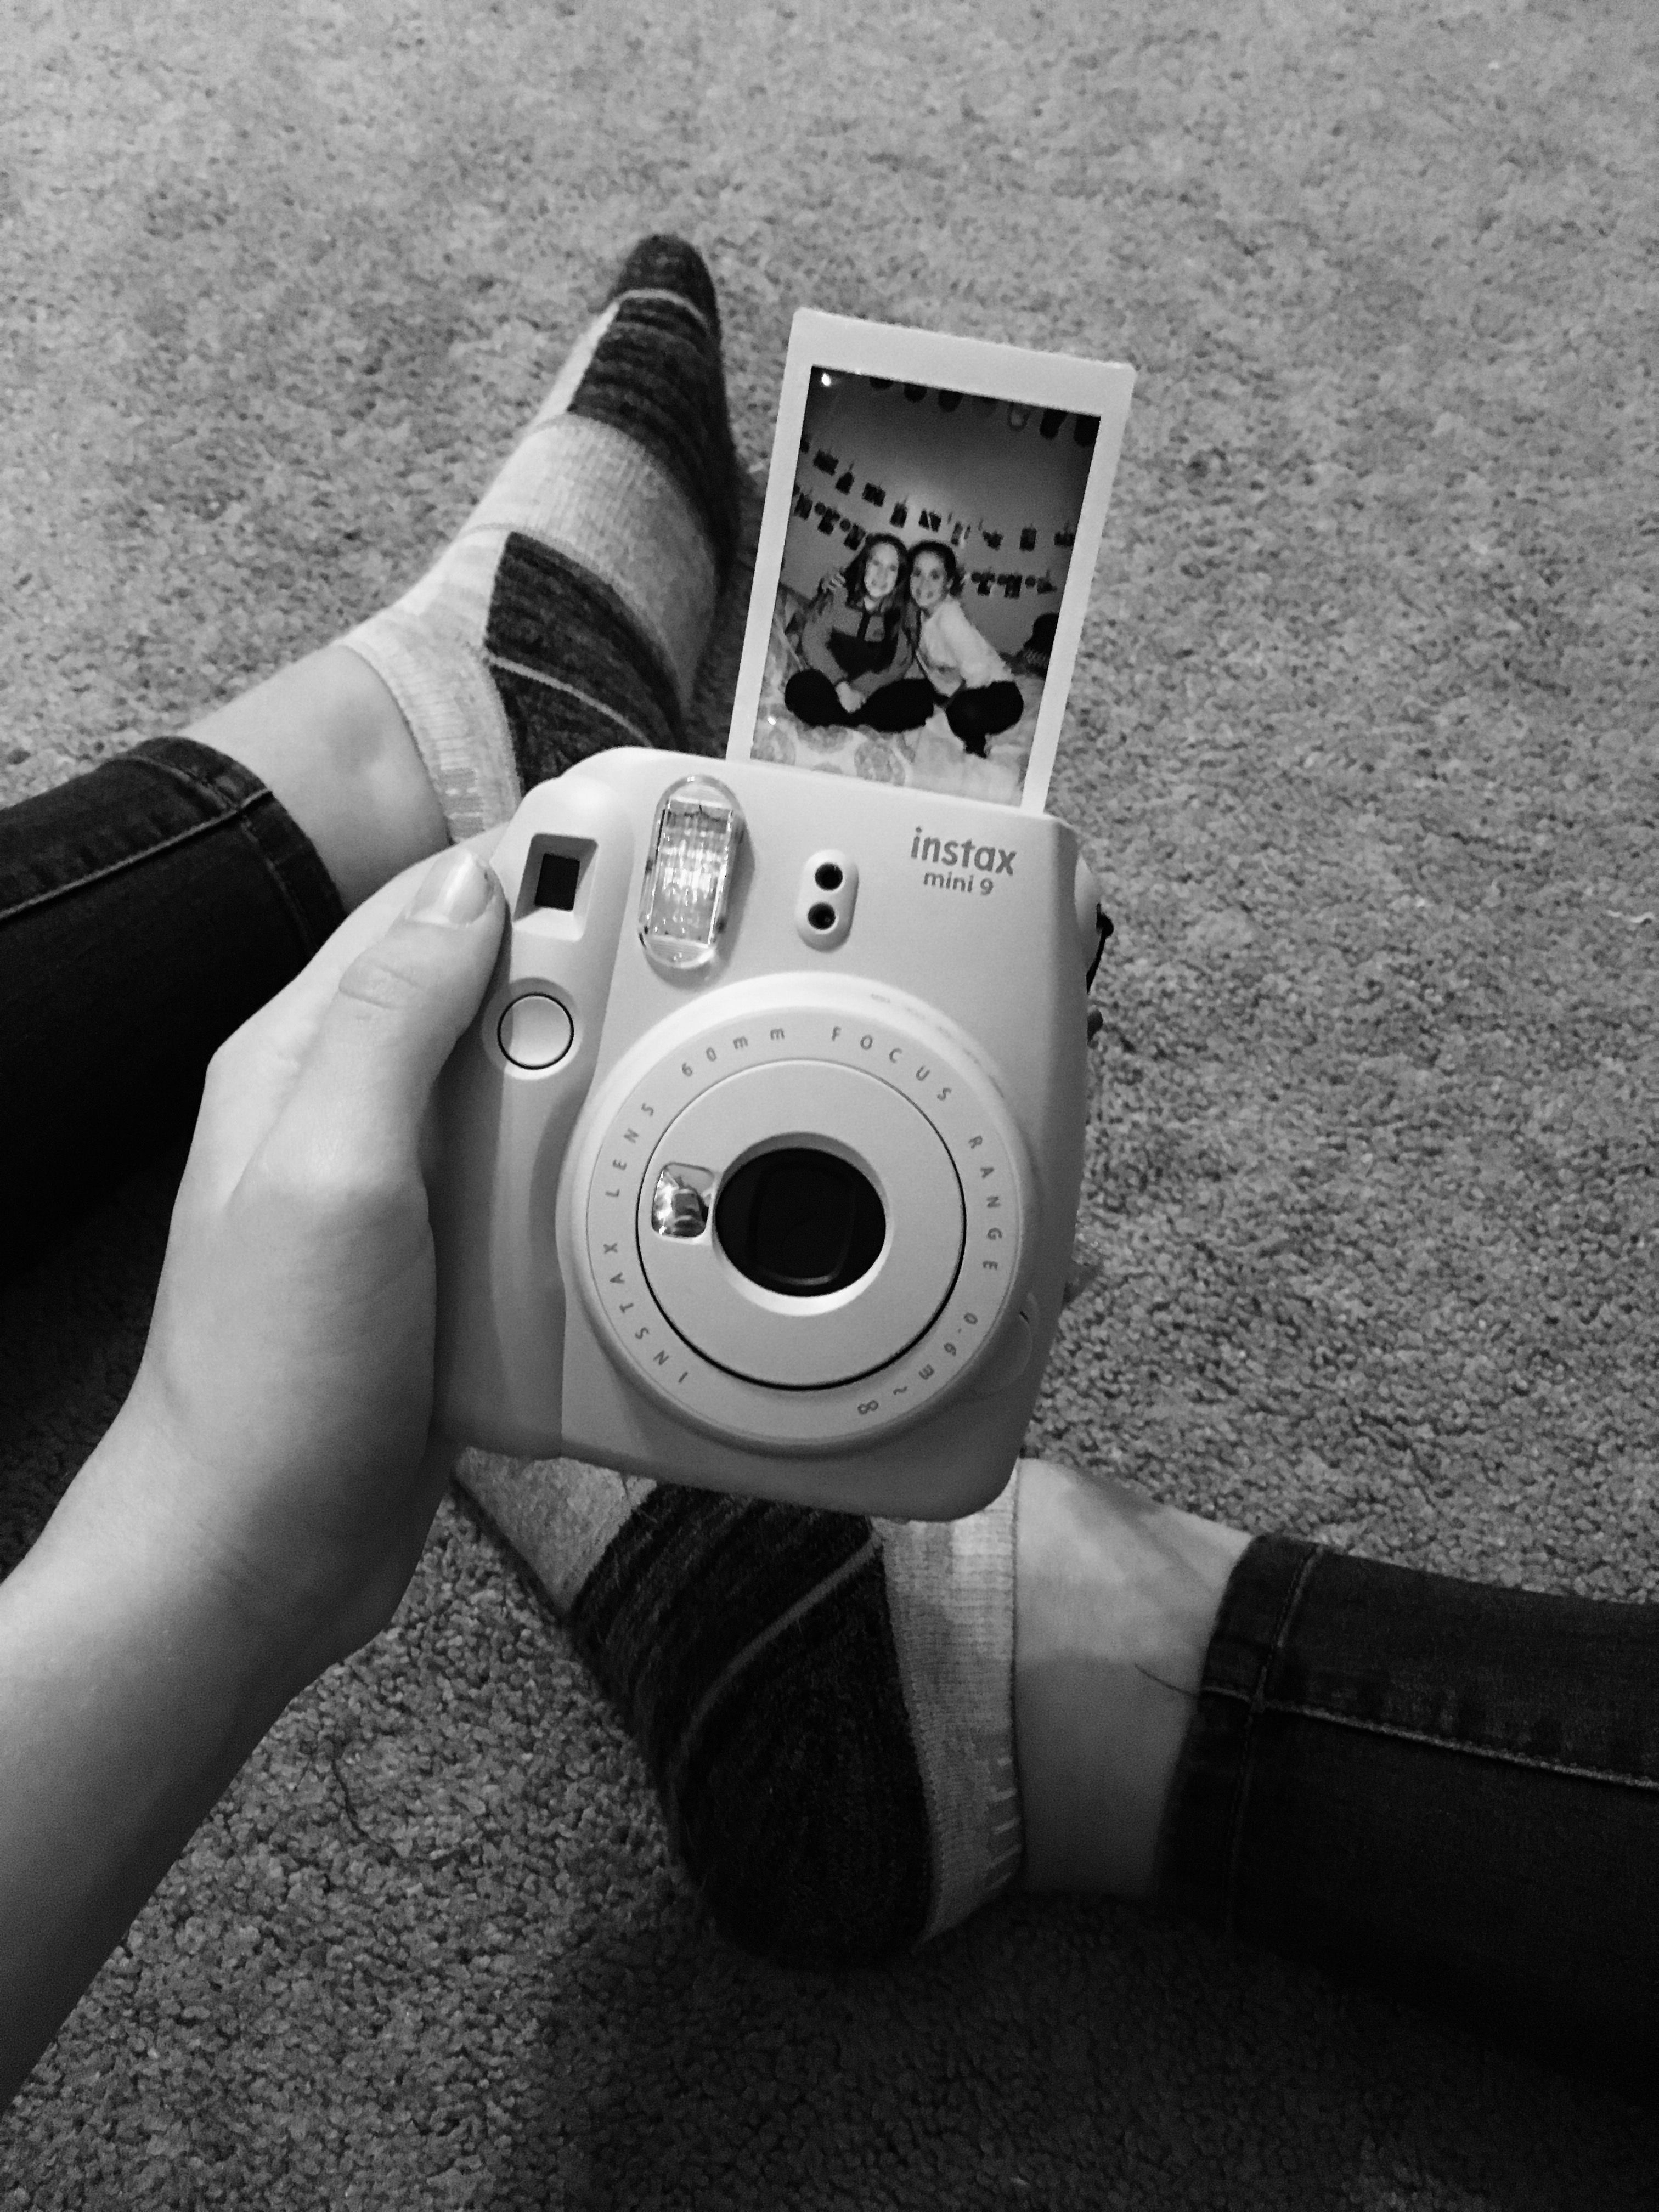 Pin by JennaGrace) on Cameras/photos Instant camera